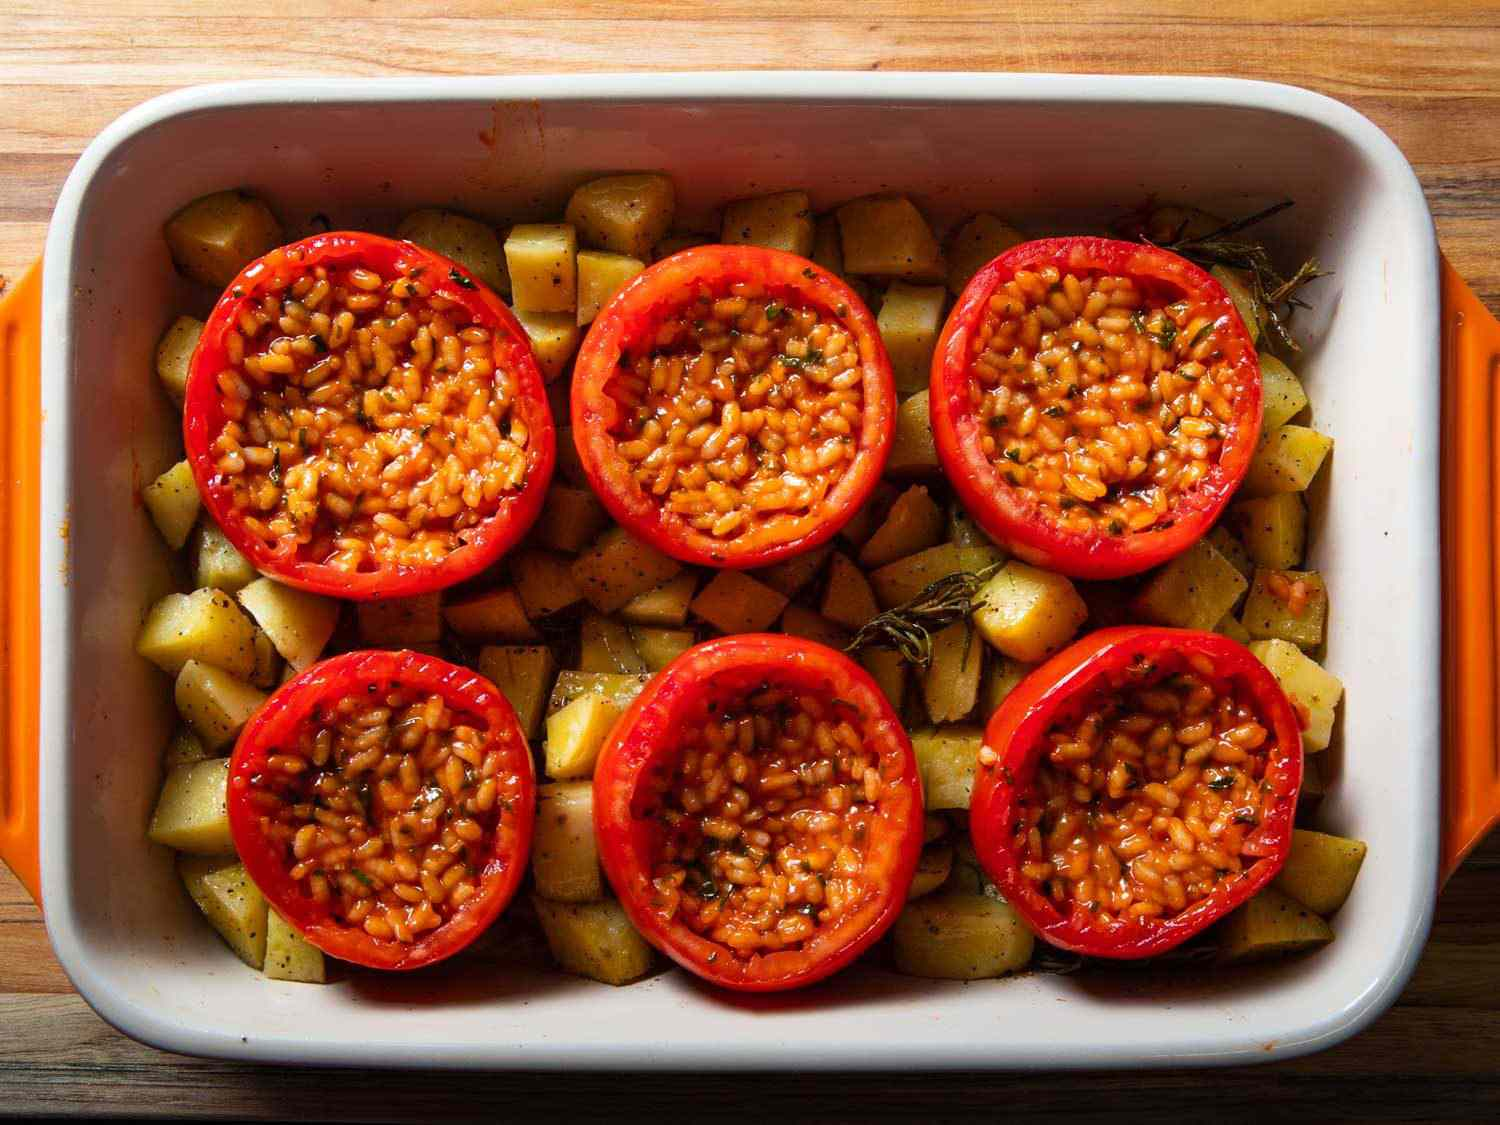 Overhead of rice-stuffed tomatoes in a baking dish with potatoes before being roasted.